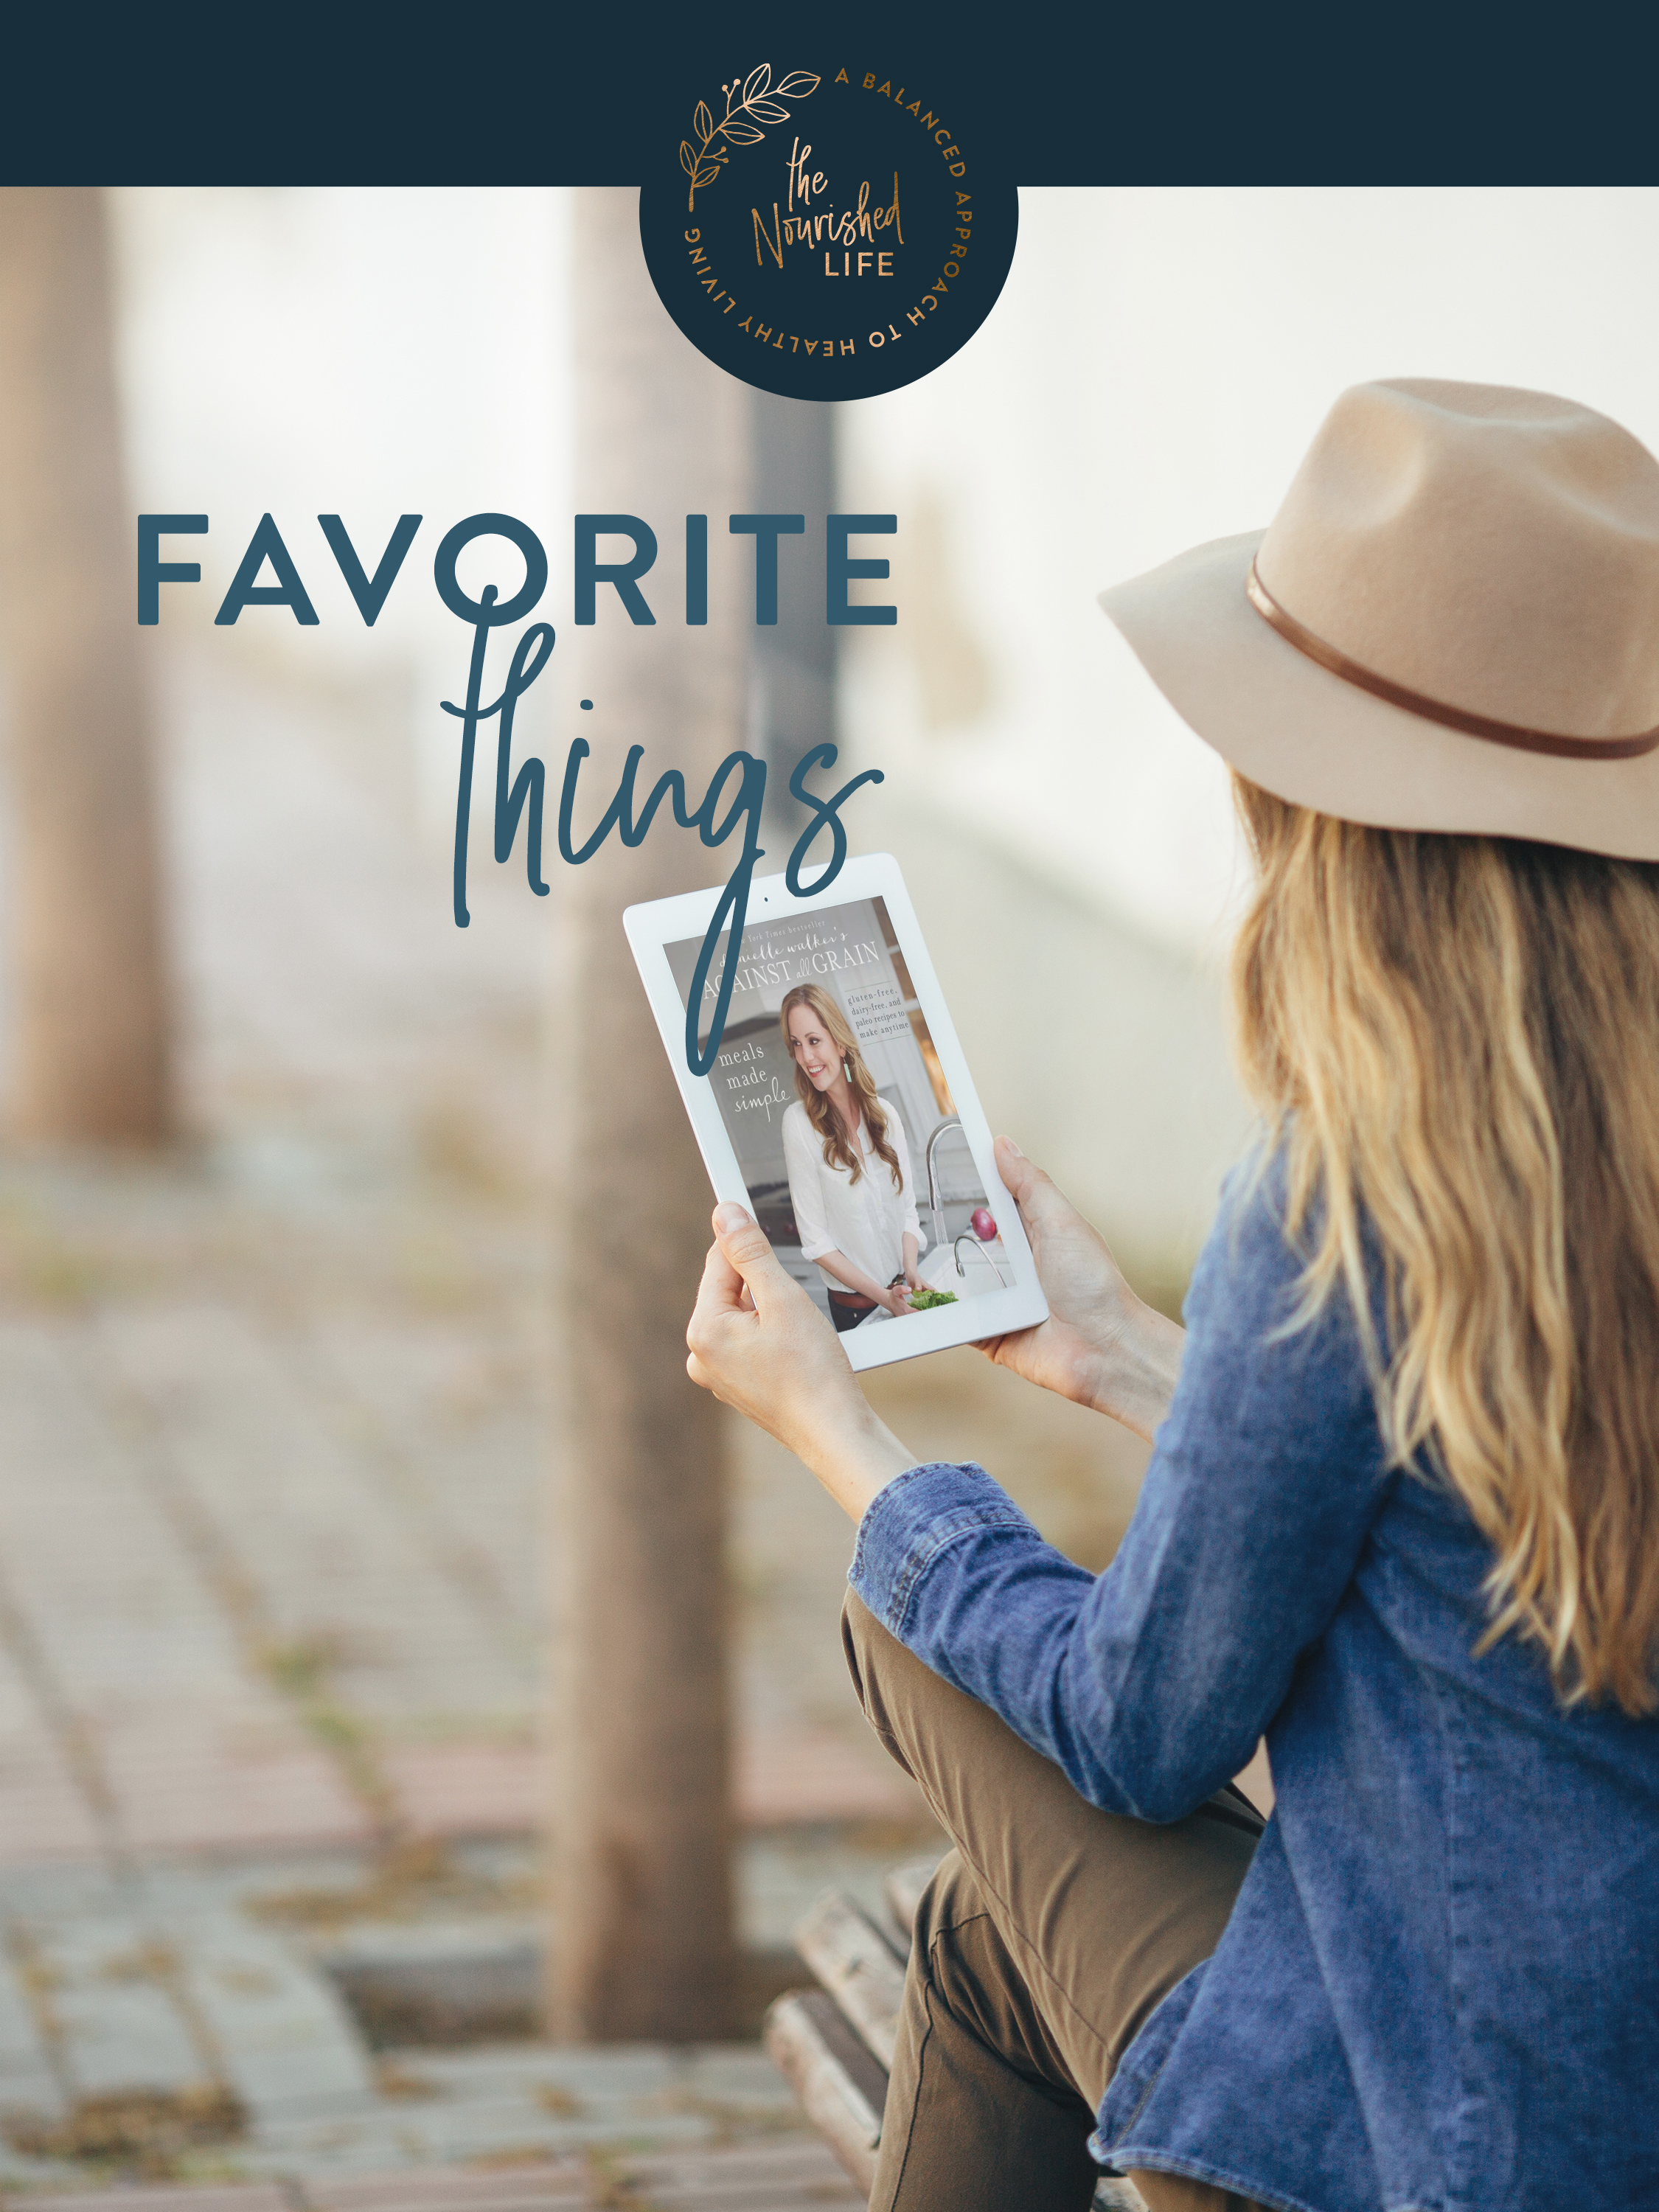 Favorite Things | The Nourished Life e-book design by Janessa Rae Design Creative